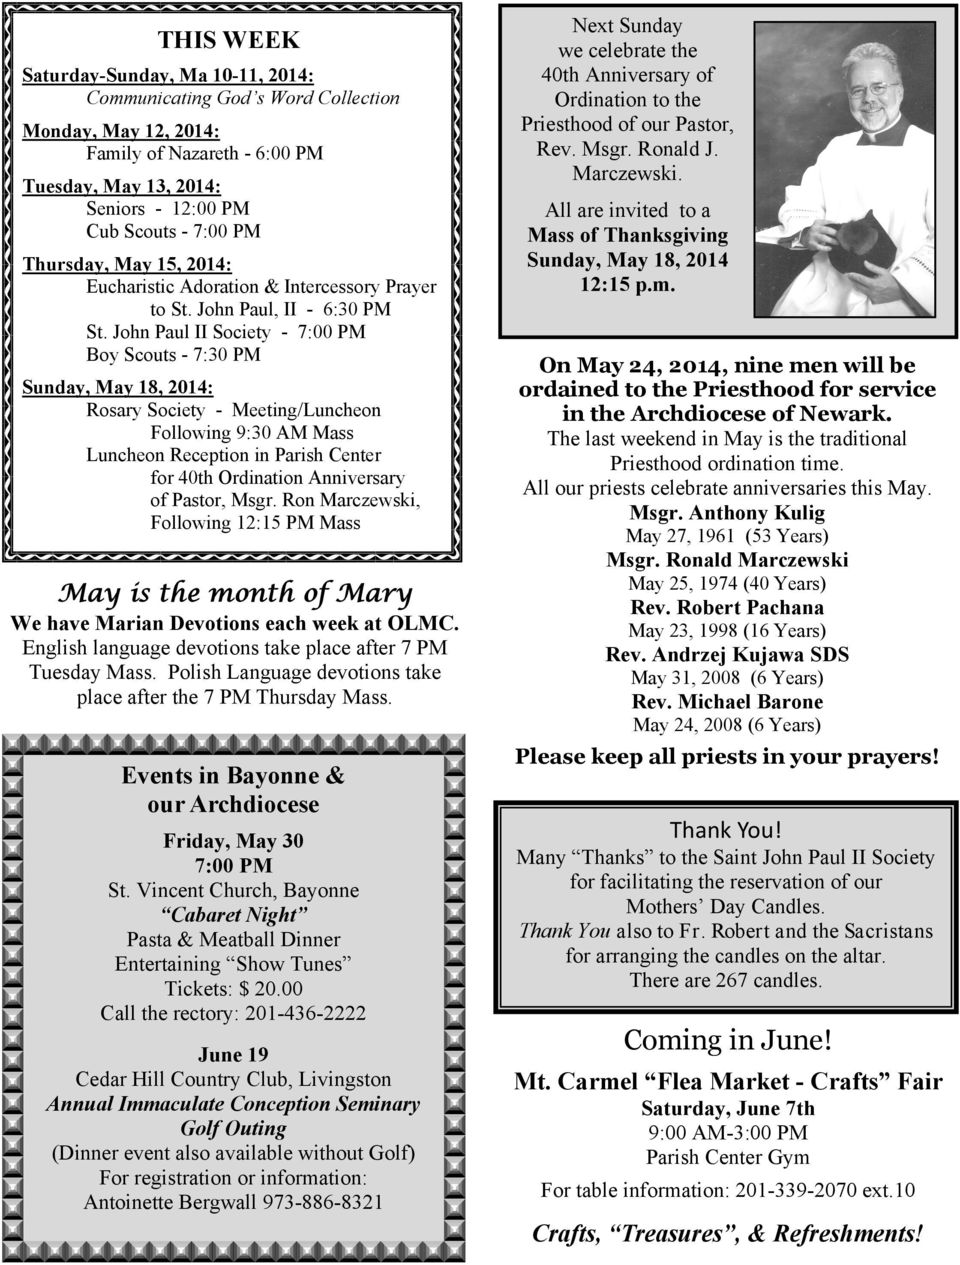 John Paul II Society - 7:00 PM Boy Scouts - 7:30 PM Sunday, May 18, 2014: Rosary Society - Meeting/Luncheon Following 9:30 AM Mass Luncheon Reception in Parish Center for 40th Ordination Anniversary